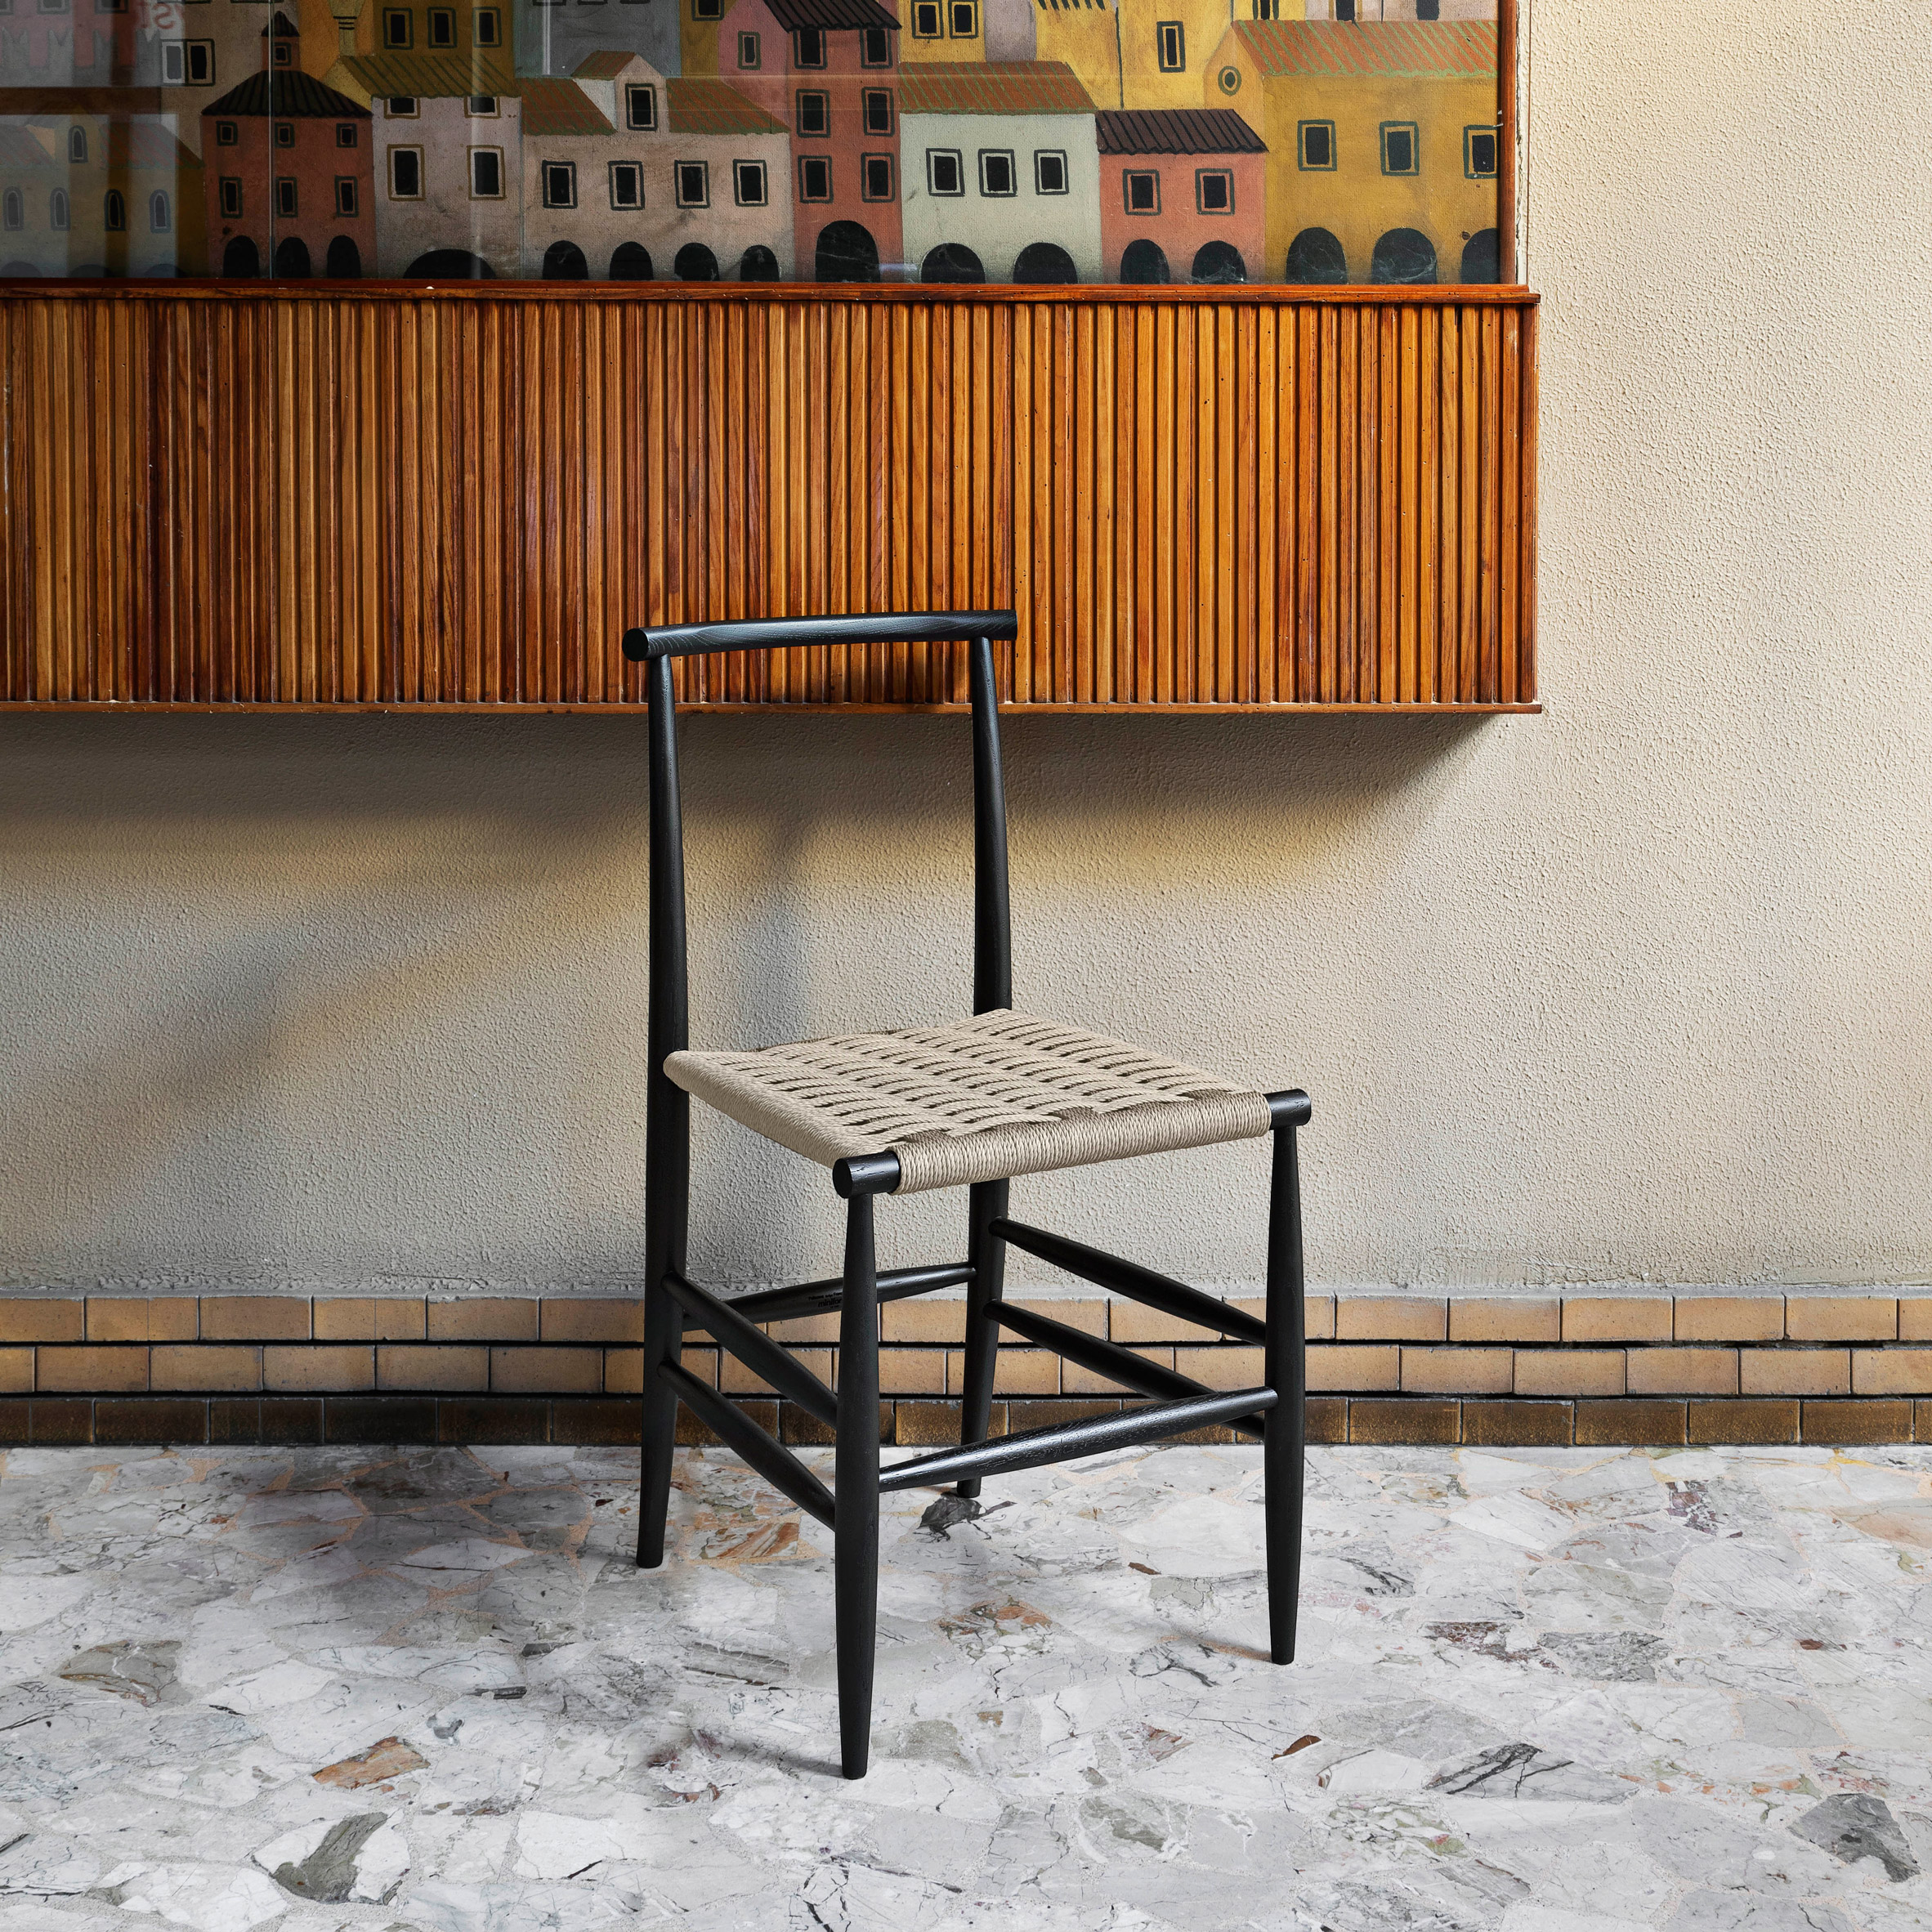 Pelleossa chair with rushed seat designed by Francesco Faccin for Miniforms